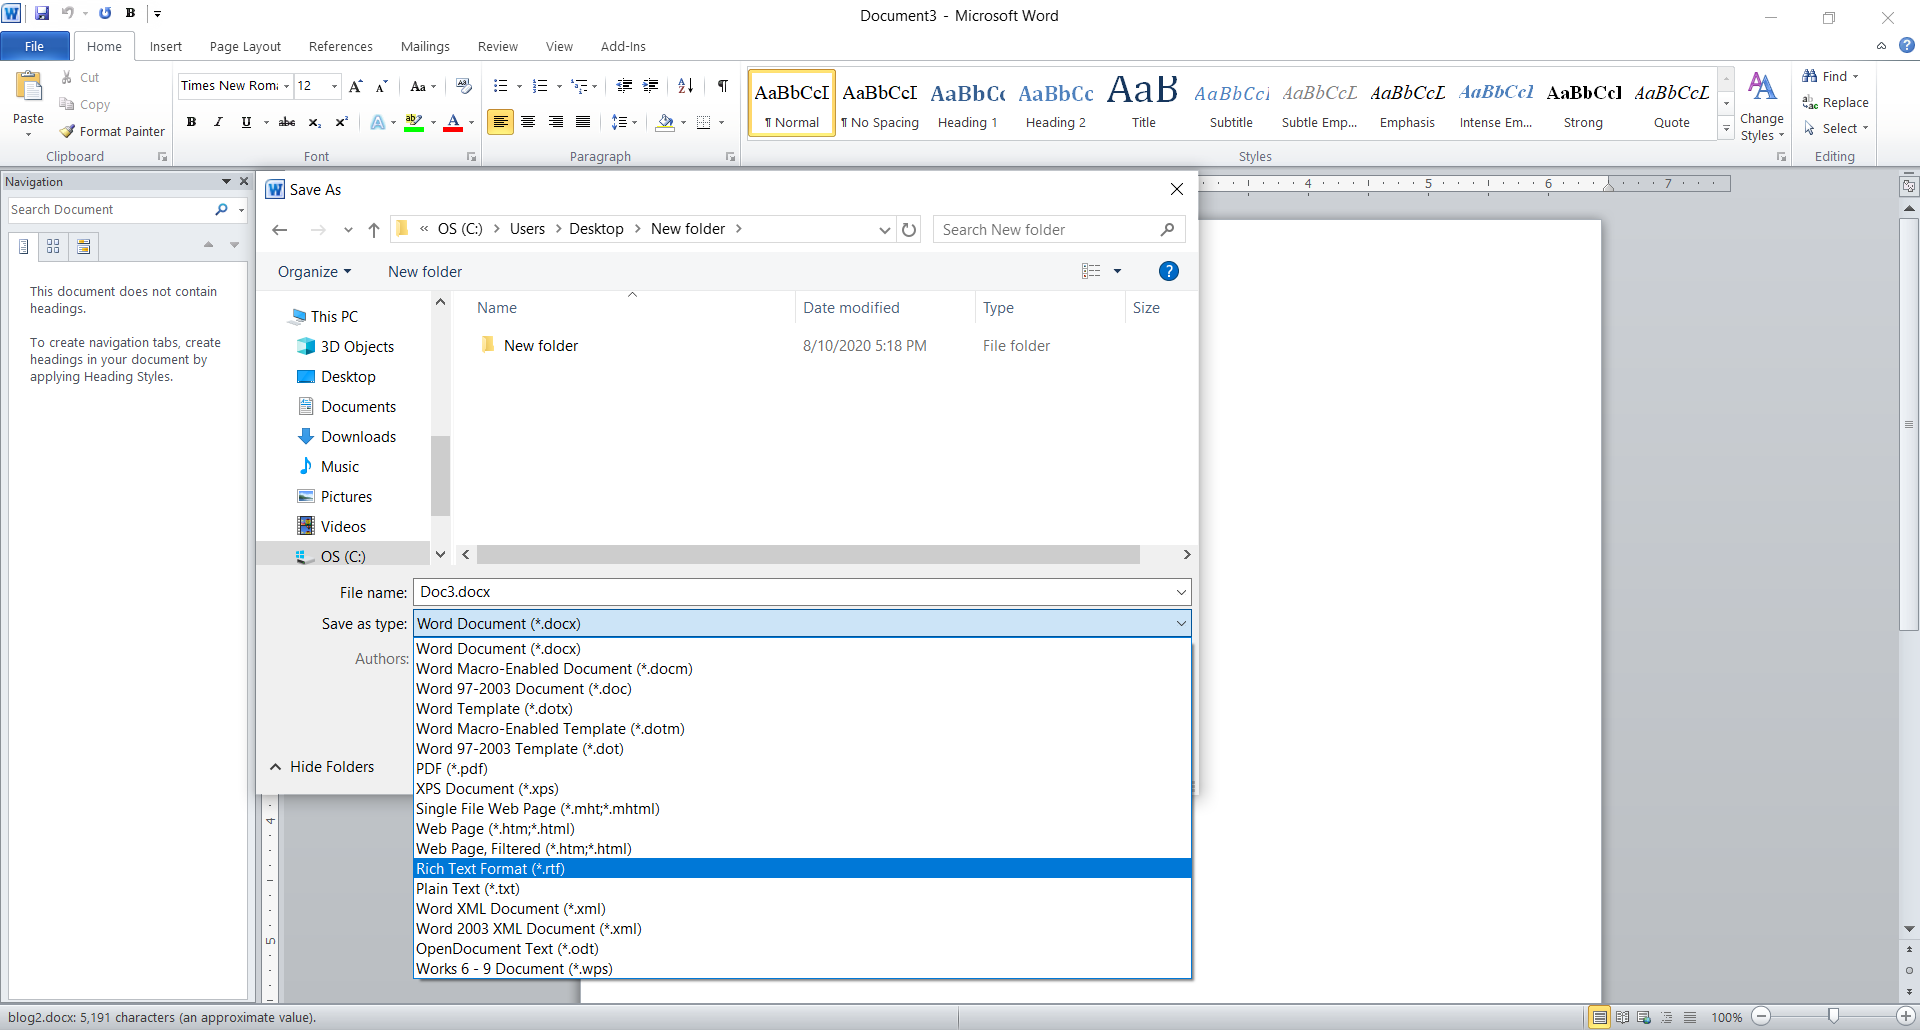 Supported formats in Microsoft Word